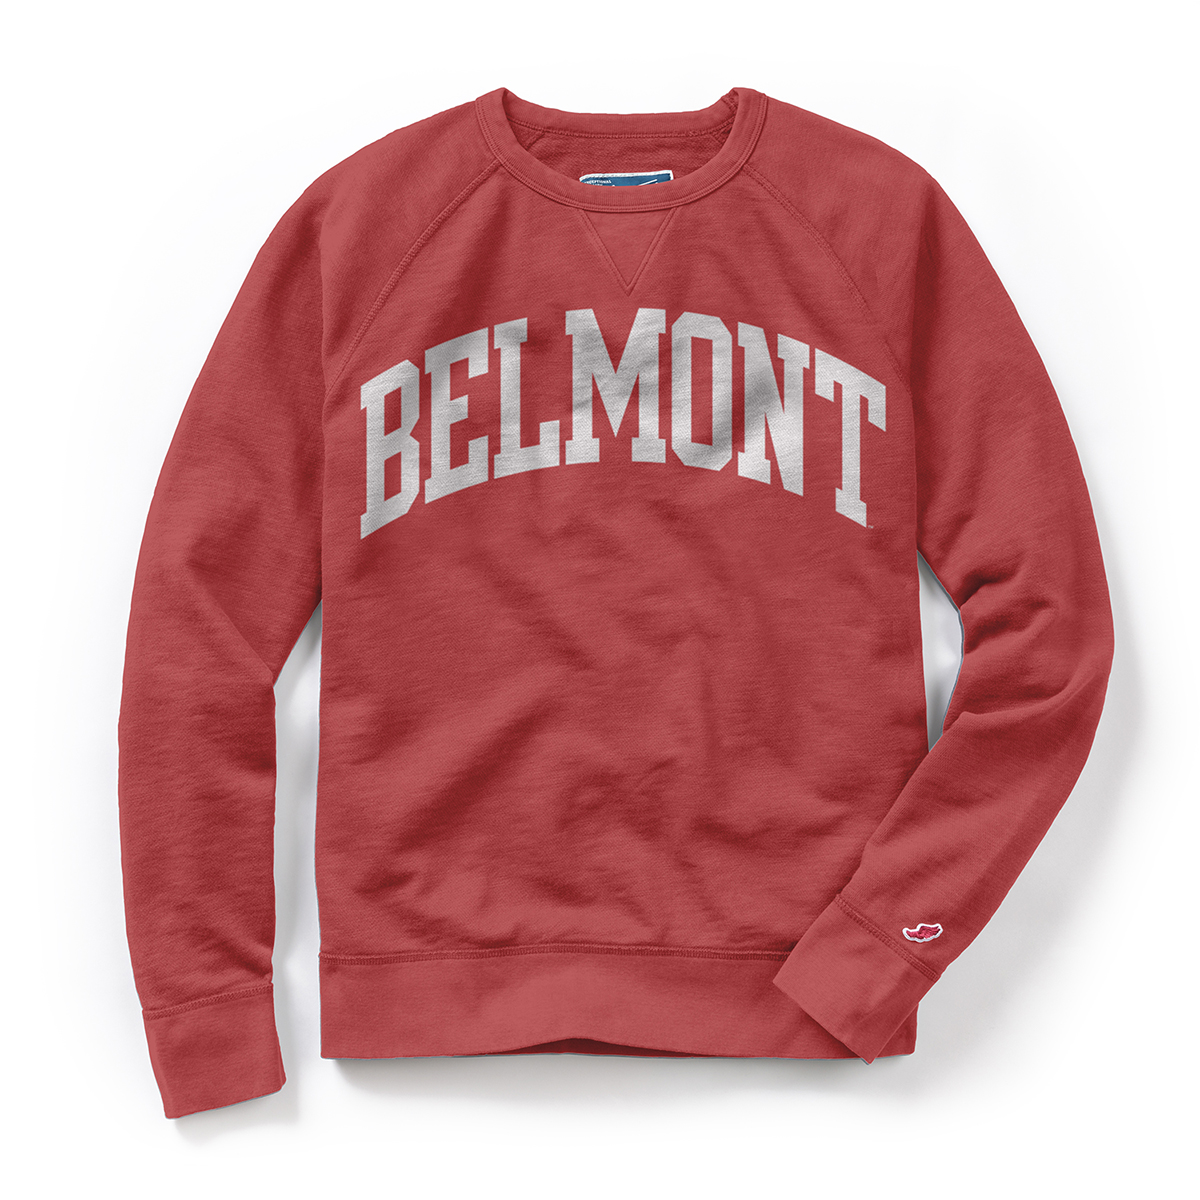 The Belmont Store Jaket Hoodie Jumper Abslt Image For Vineyard Crew